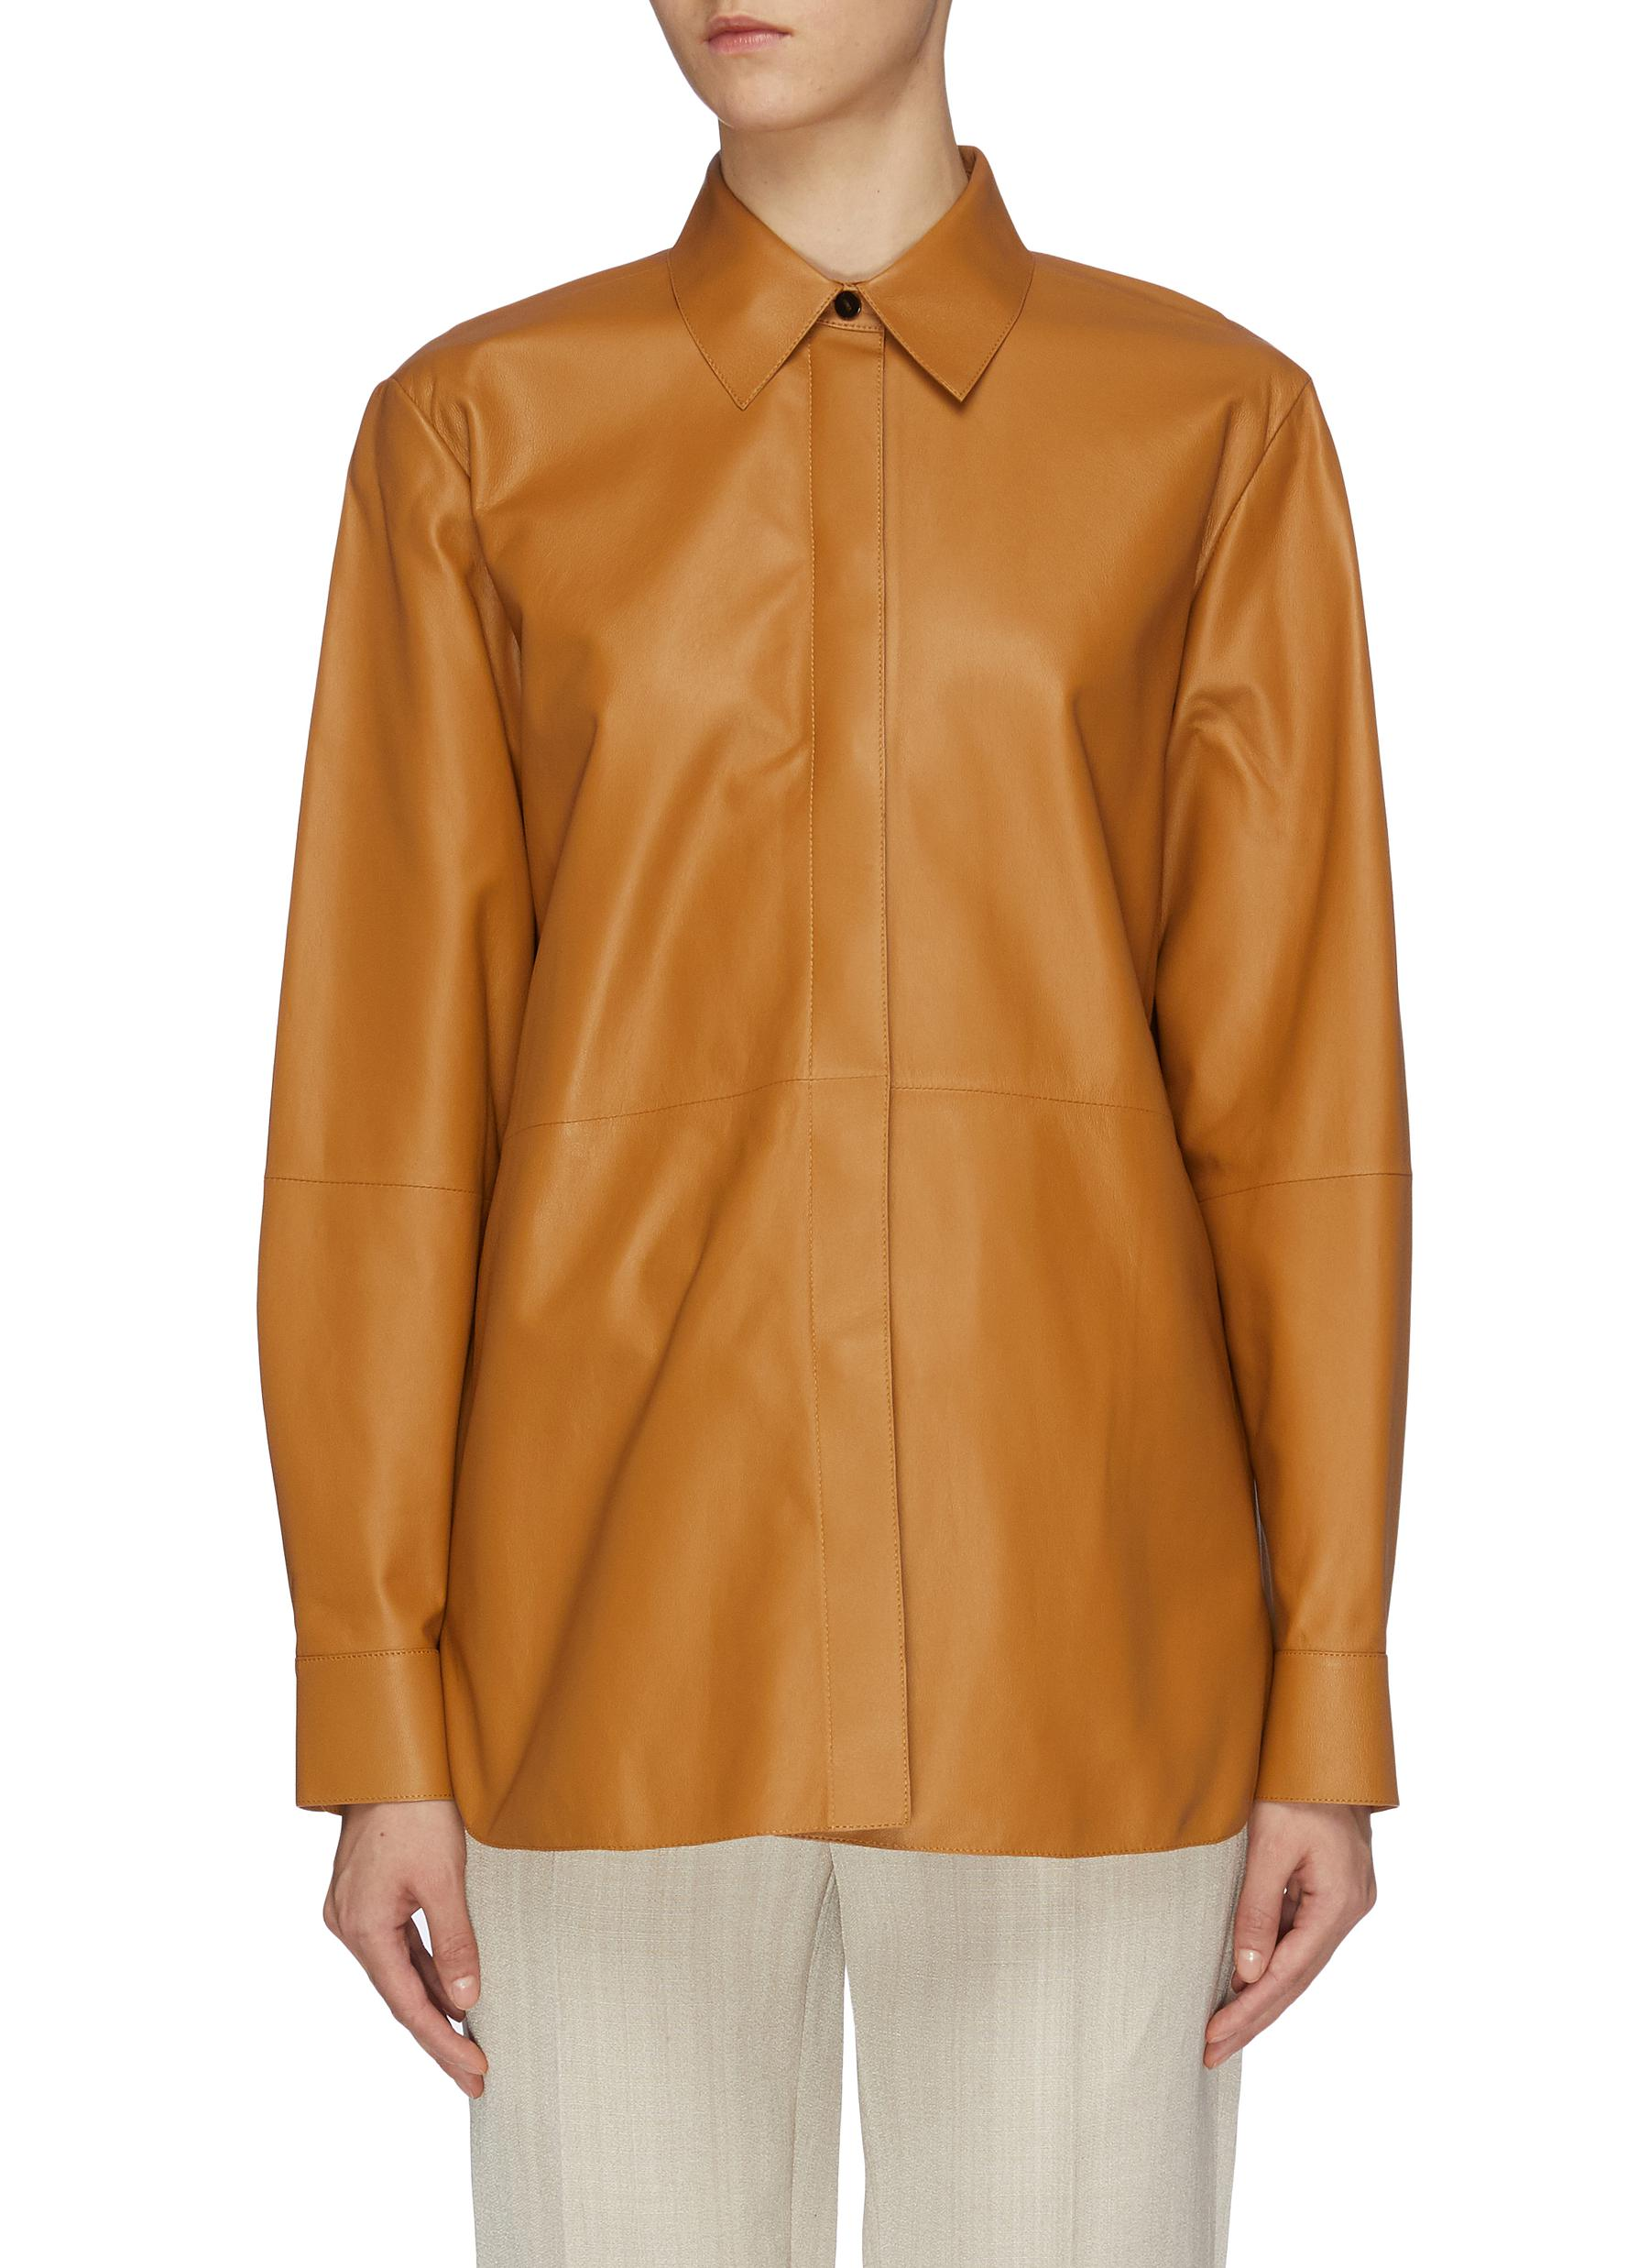 Menswear oversized nappa leather shirt by Theory